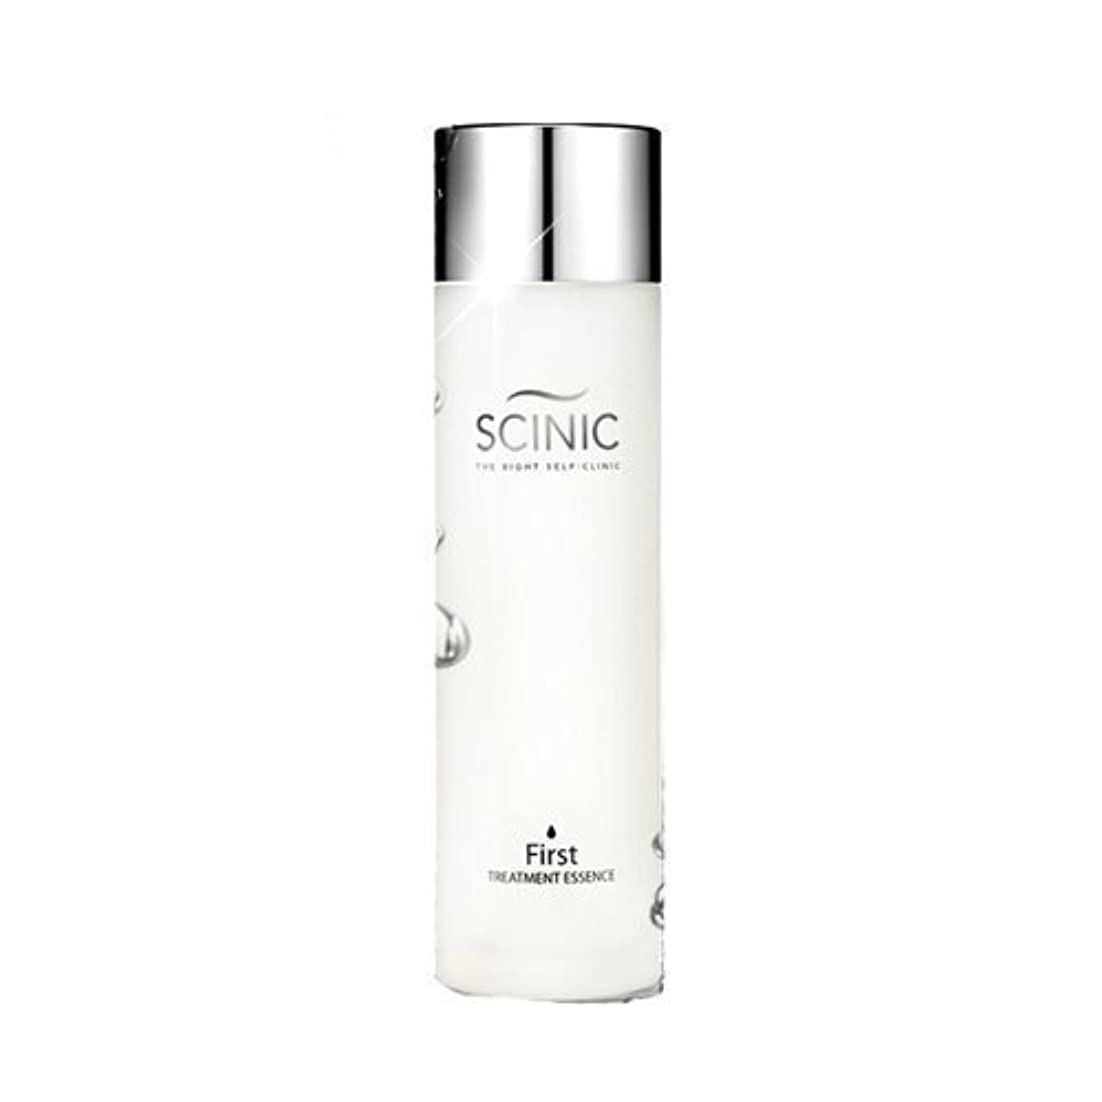 SCINIC First Treatment Yeast Essence Galactomyces Whitening Anti-Wrinkle 150ml